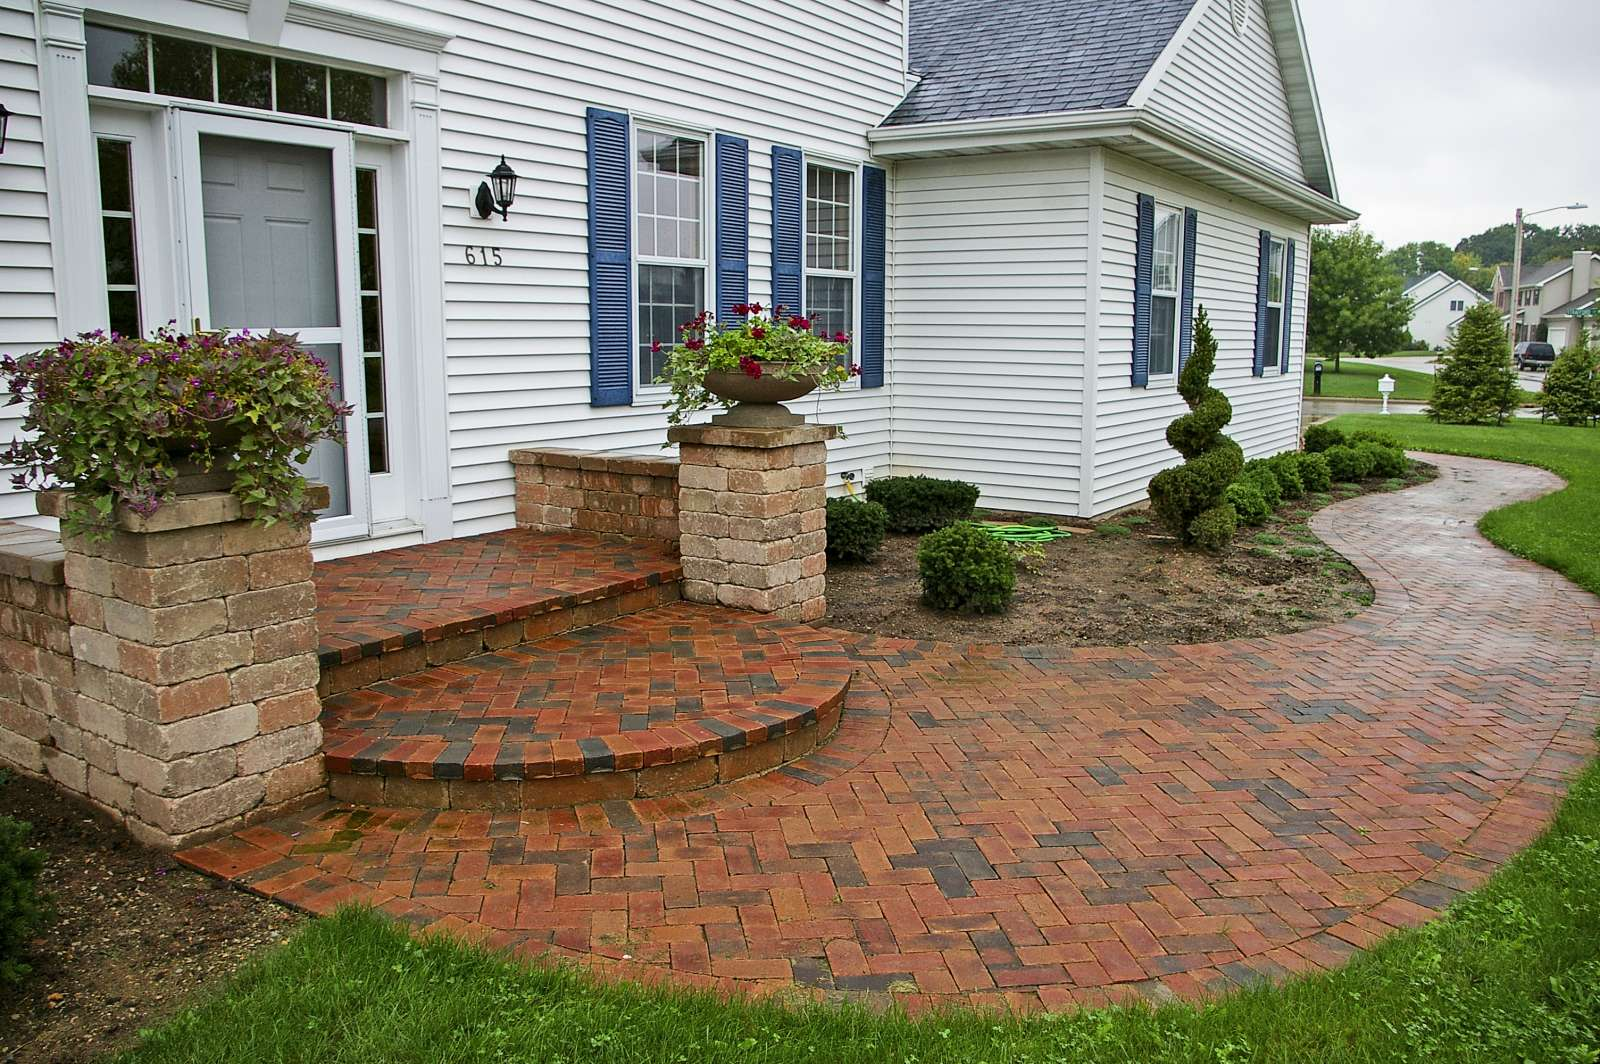 Landscaping Design of Patios, Walkways, and Paths, in ... on Landscaping And Patios id=90633